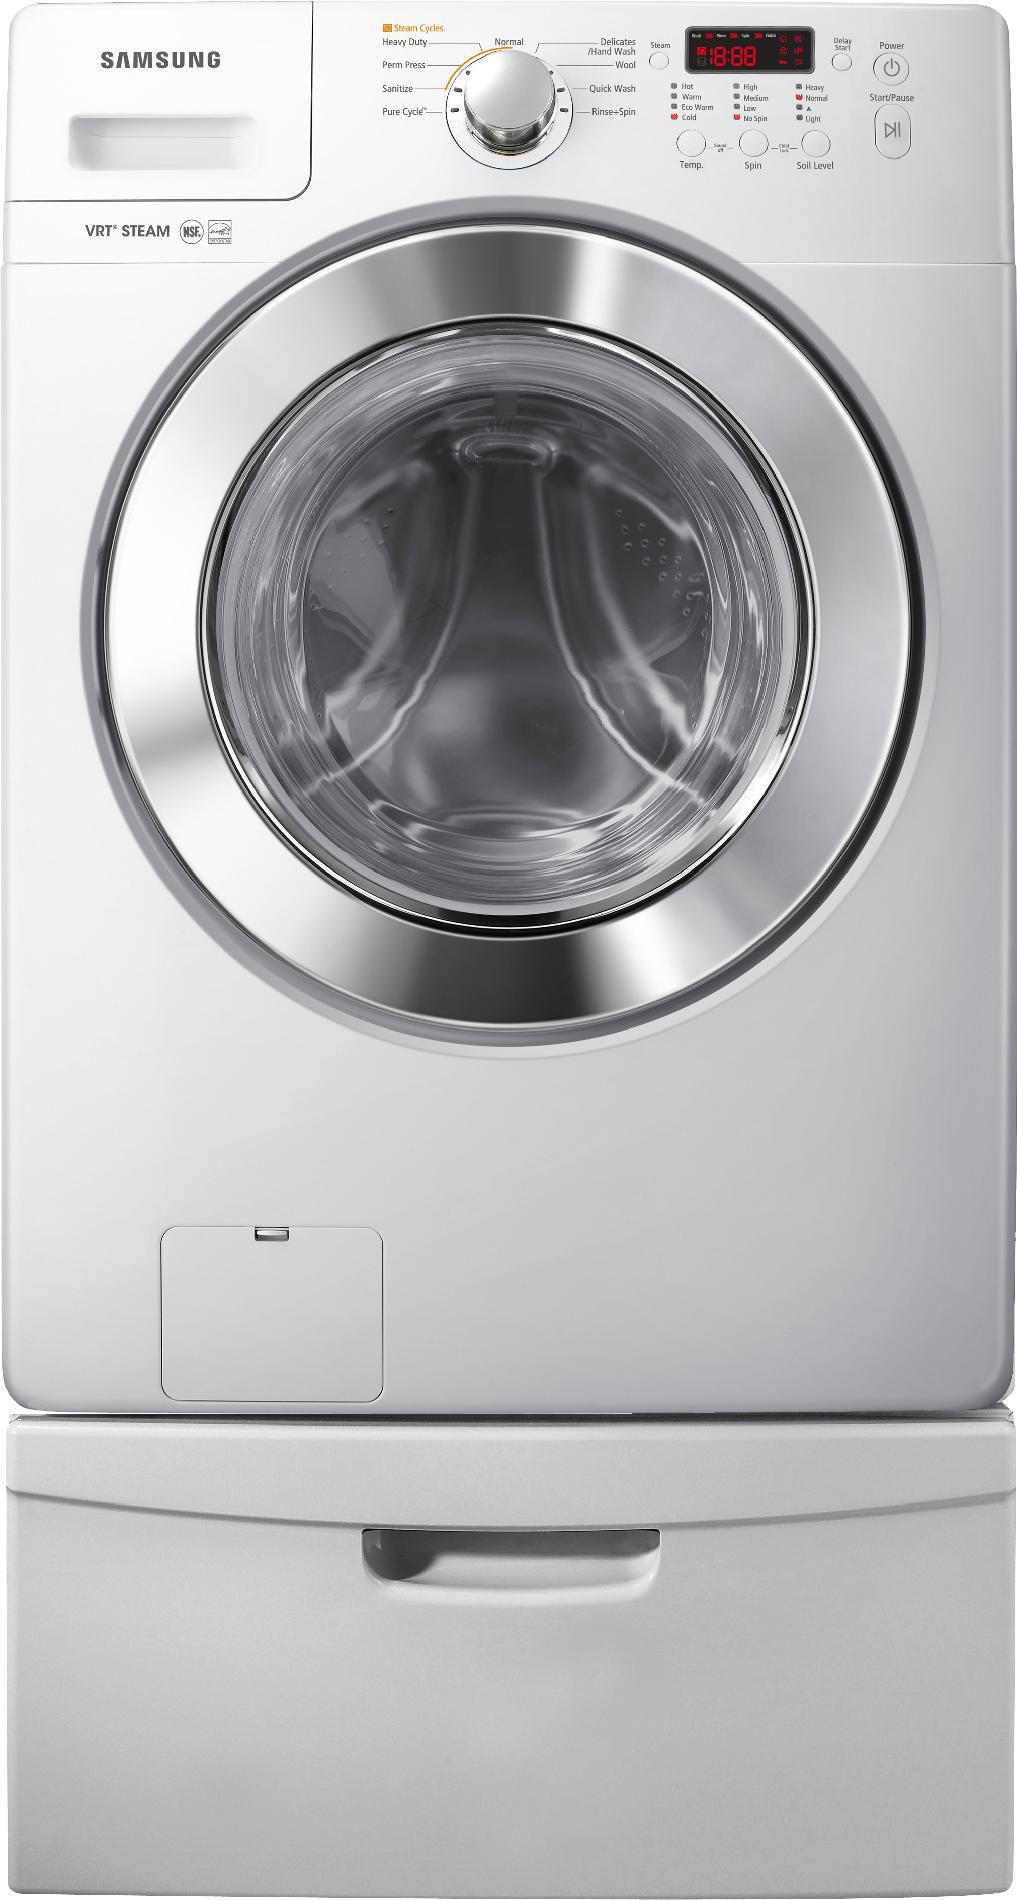 Samsung 7.3 cu. ft. Steam Gas Dryer - White